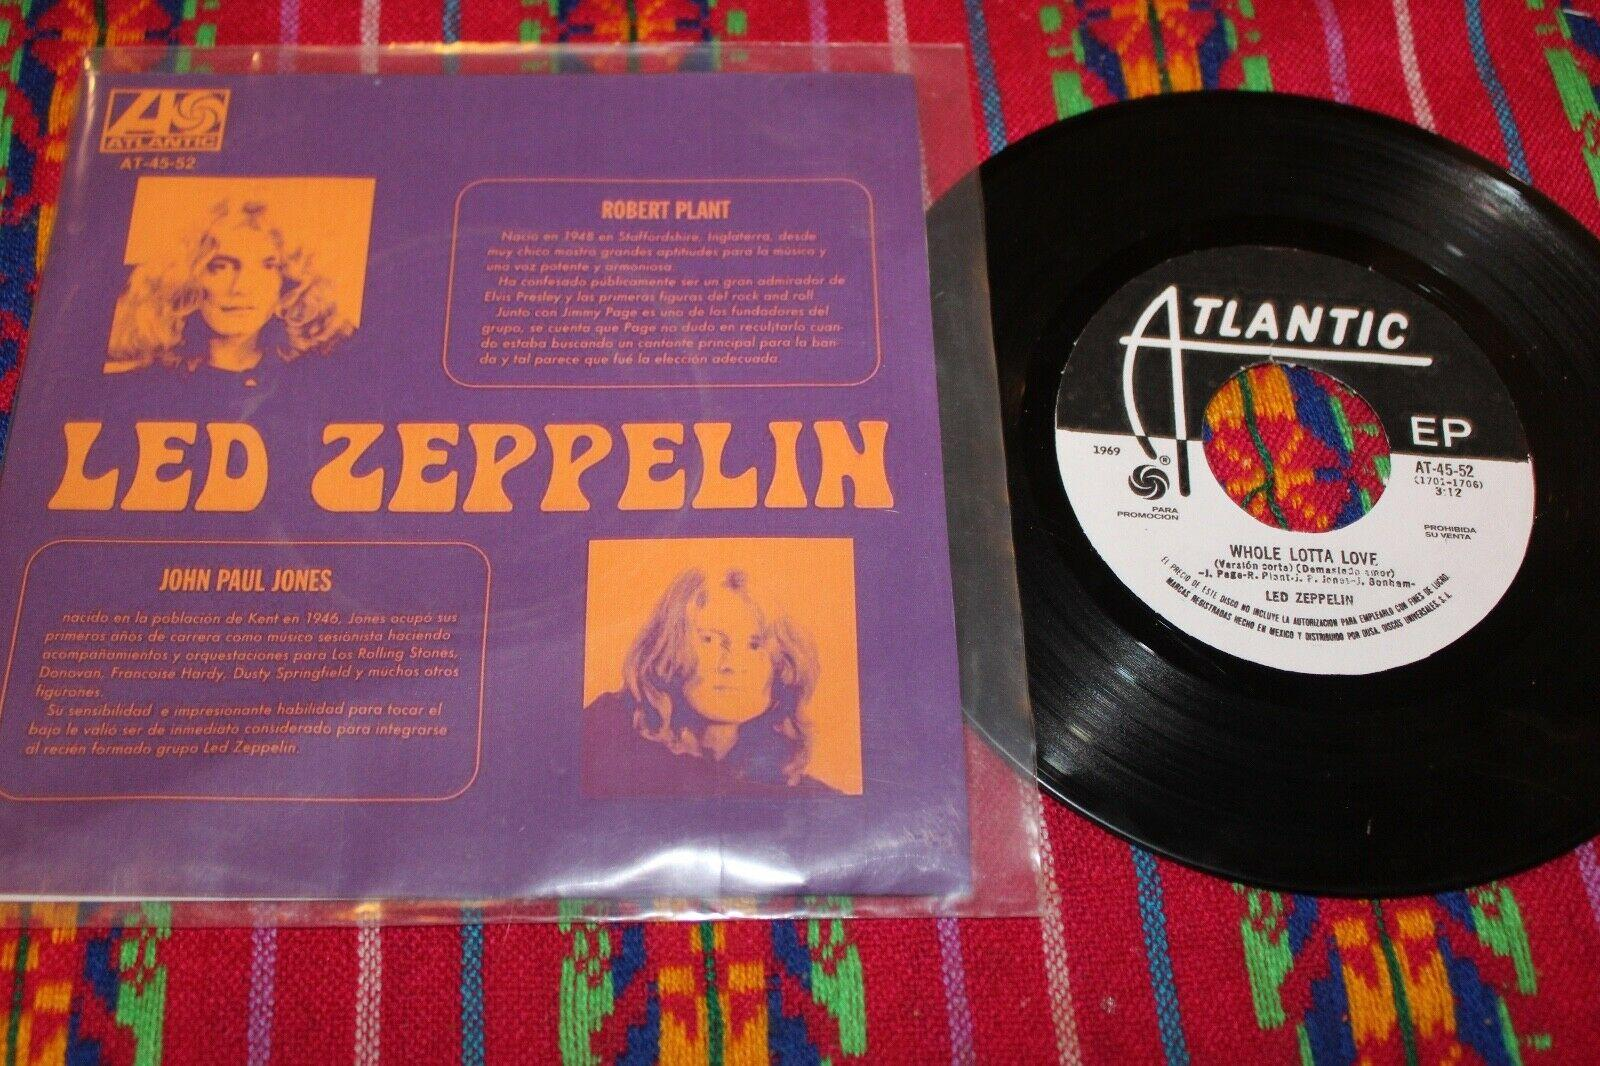 "LED ZEPPELIN Demasiado Amor - Whole Lotta Love 1969 MEXICO 7"" RADIO PROMO 45"